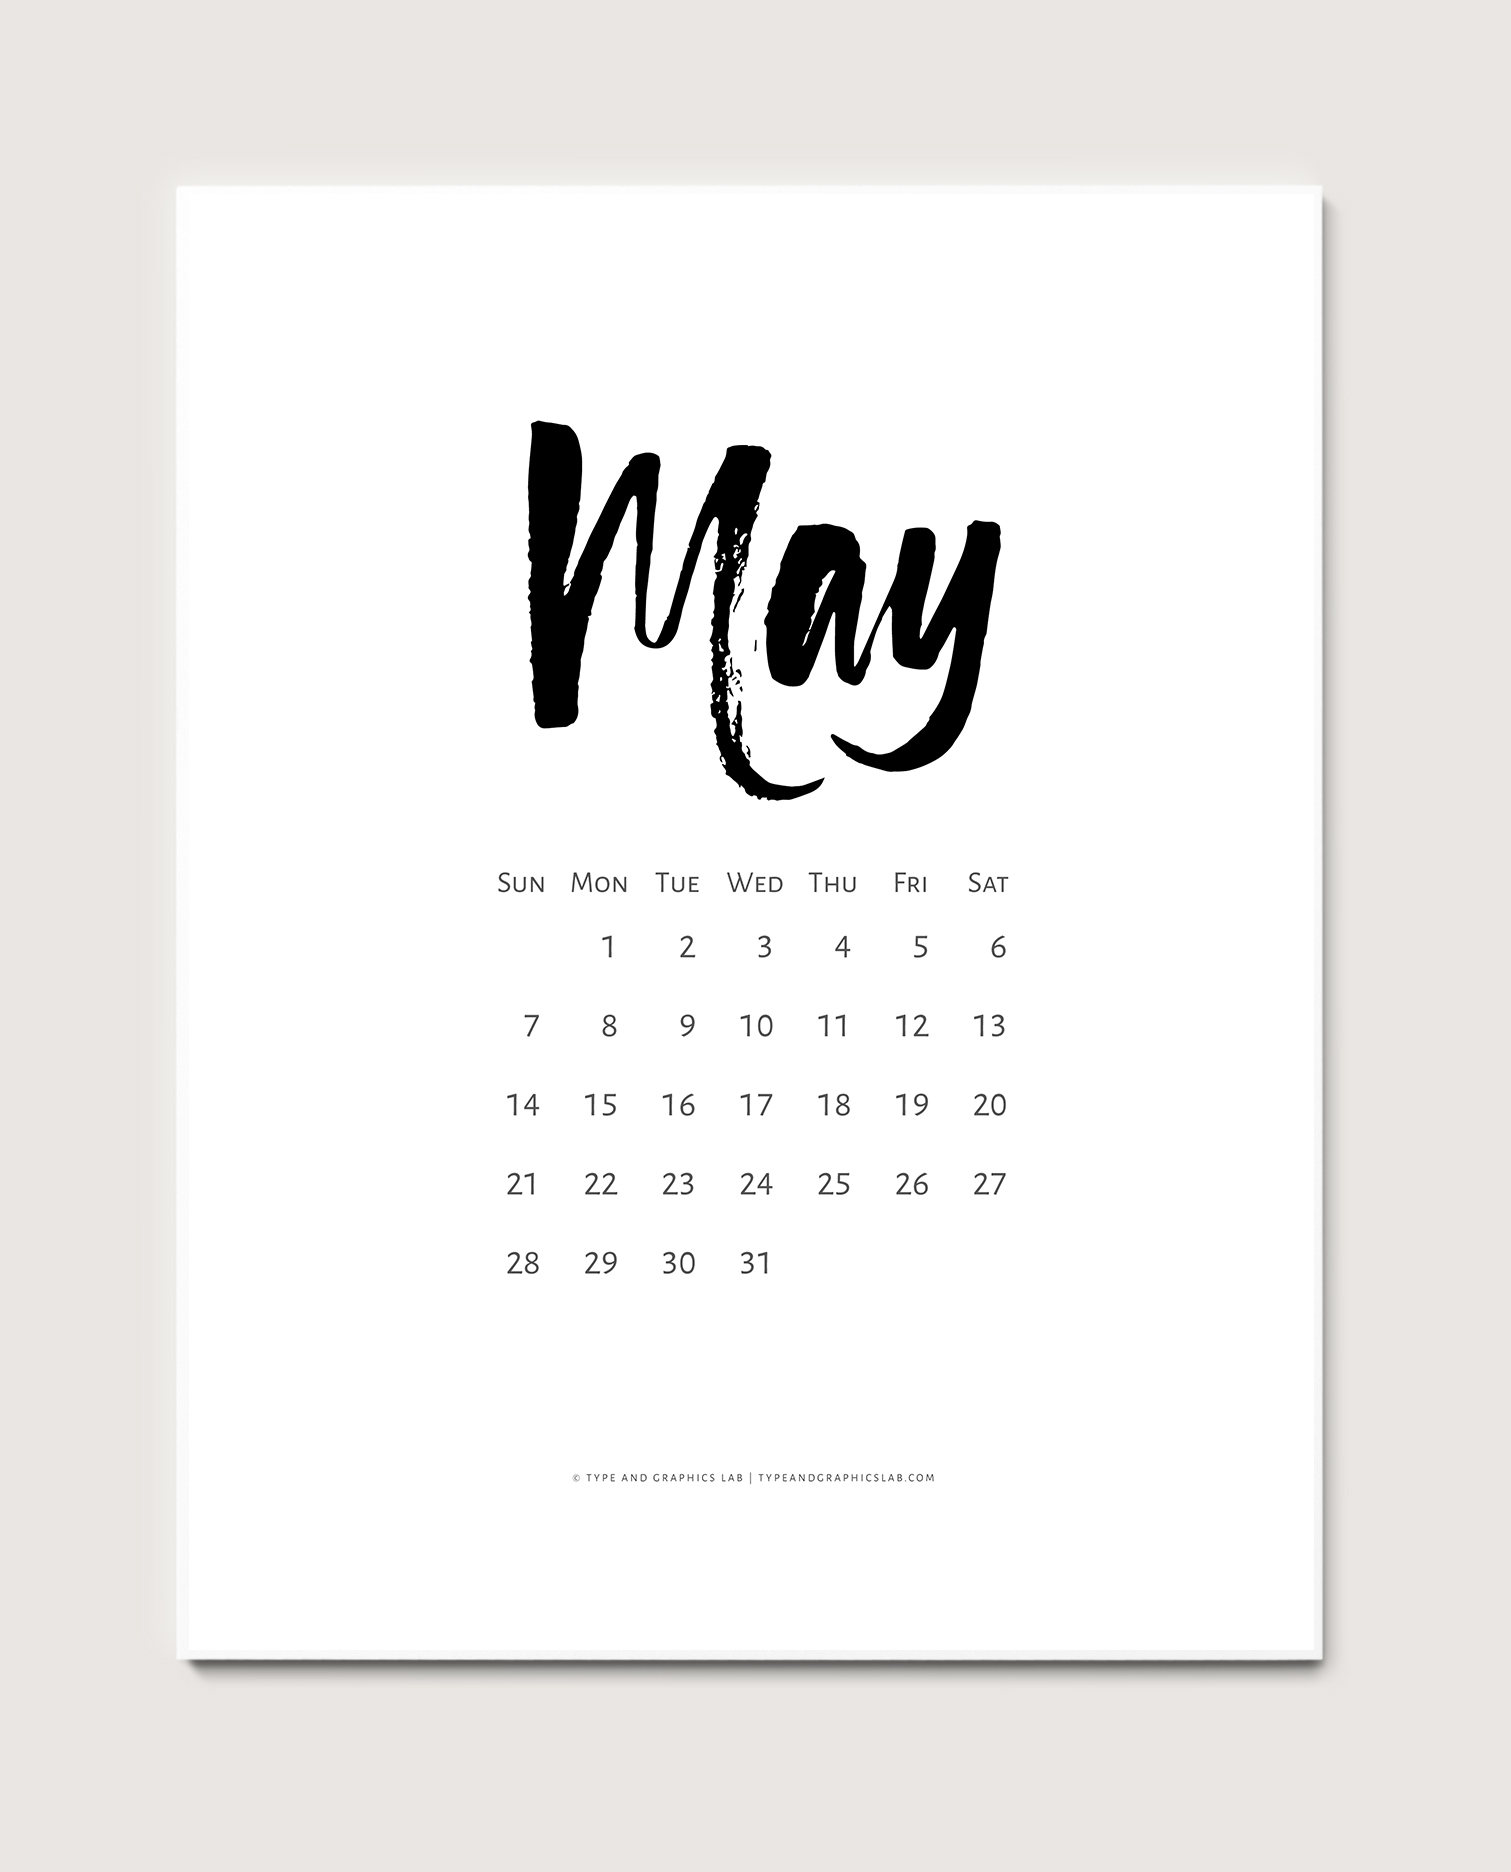 Download a free printable calendar for May 2017 |©typeandgraphicslab.com | For personal use only